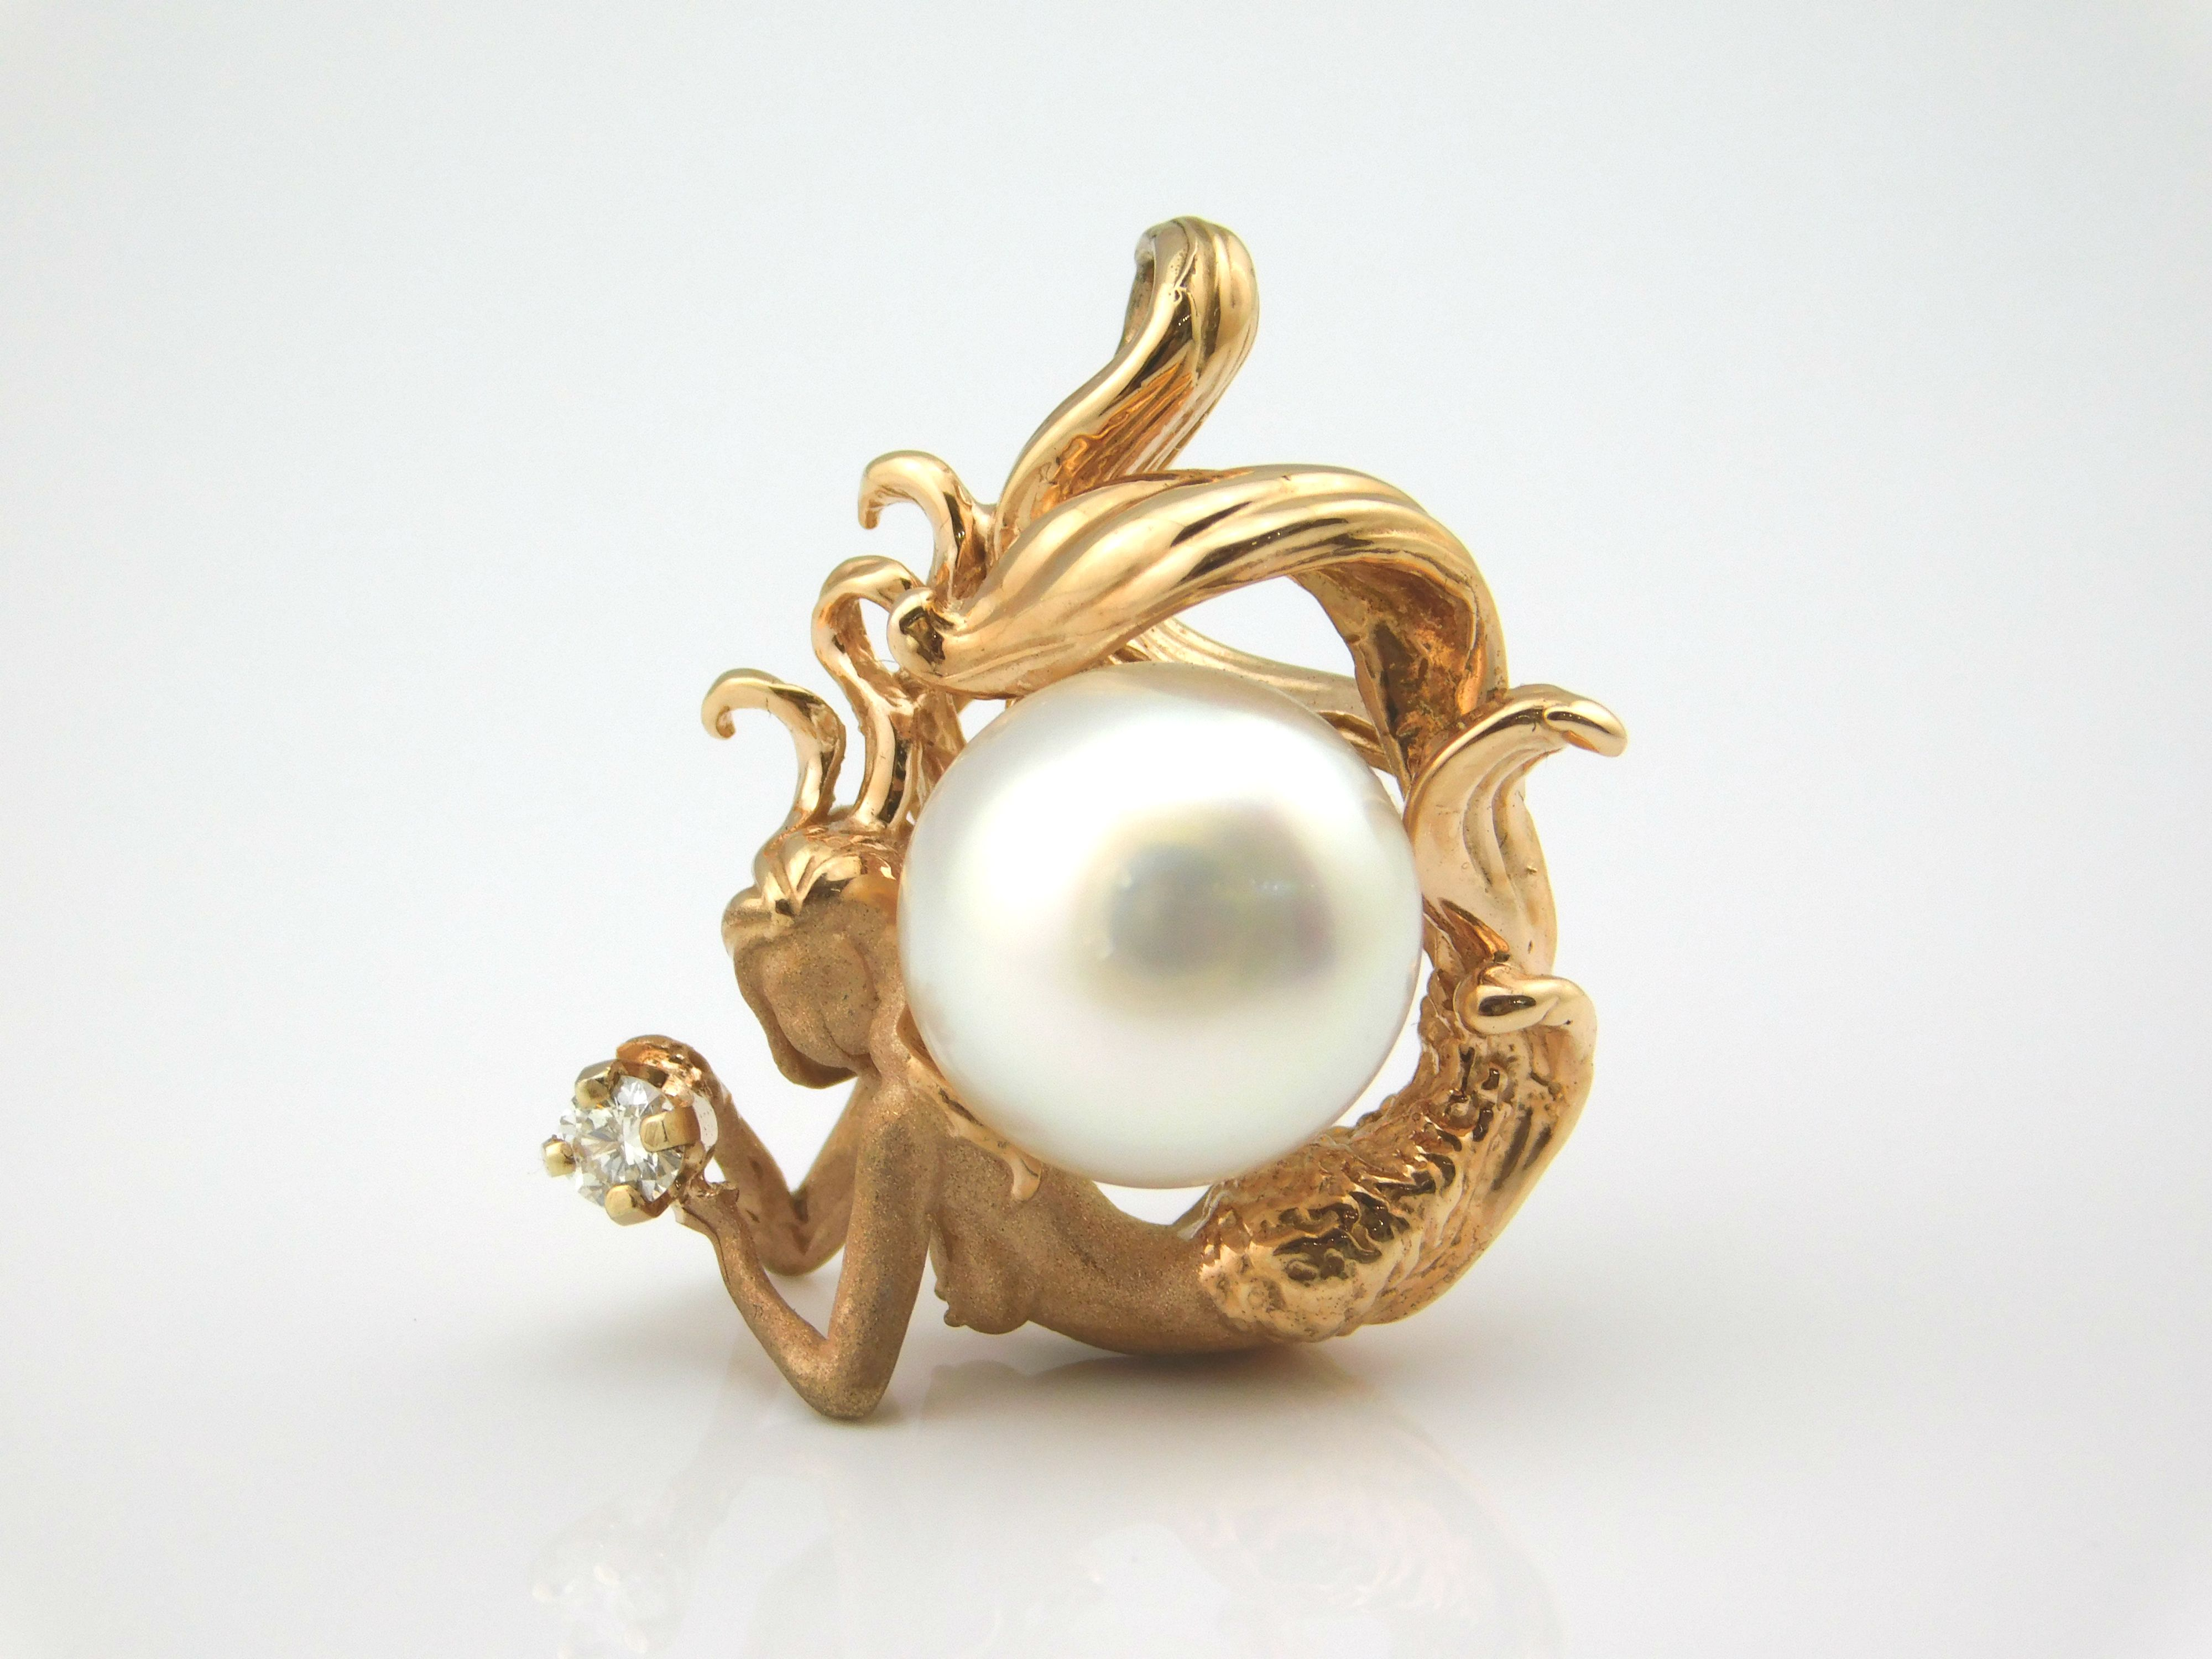 14k rose gold mermaid pendant with a south sea pearl and a diamond 14k rose gold mermaid pendant with a south sea pearl and a diamond aloadofball Choice Image